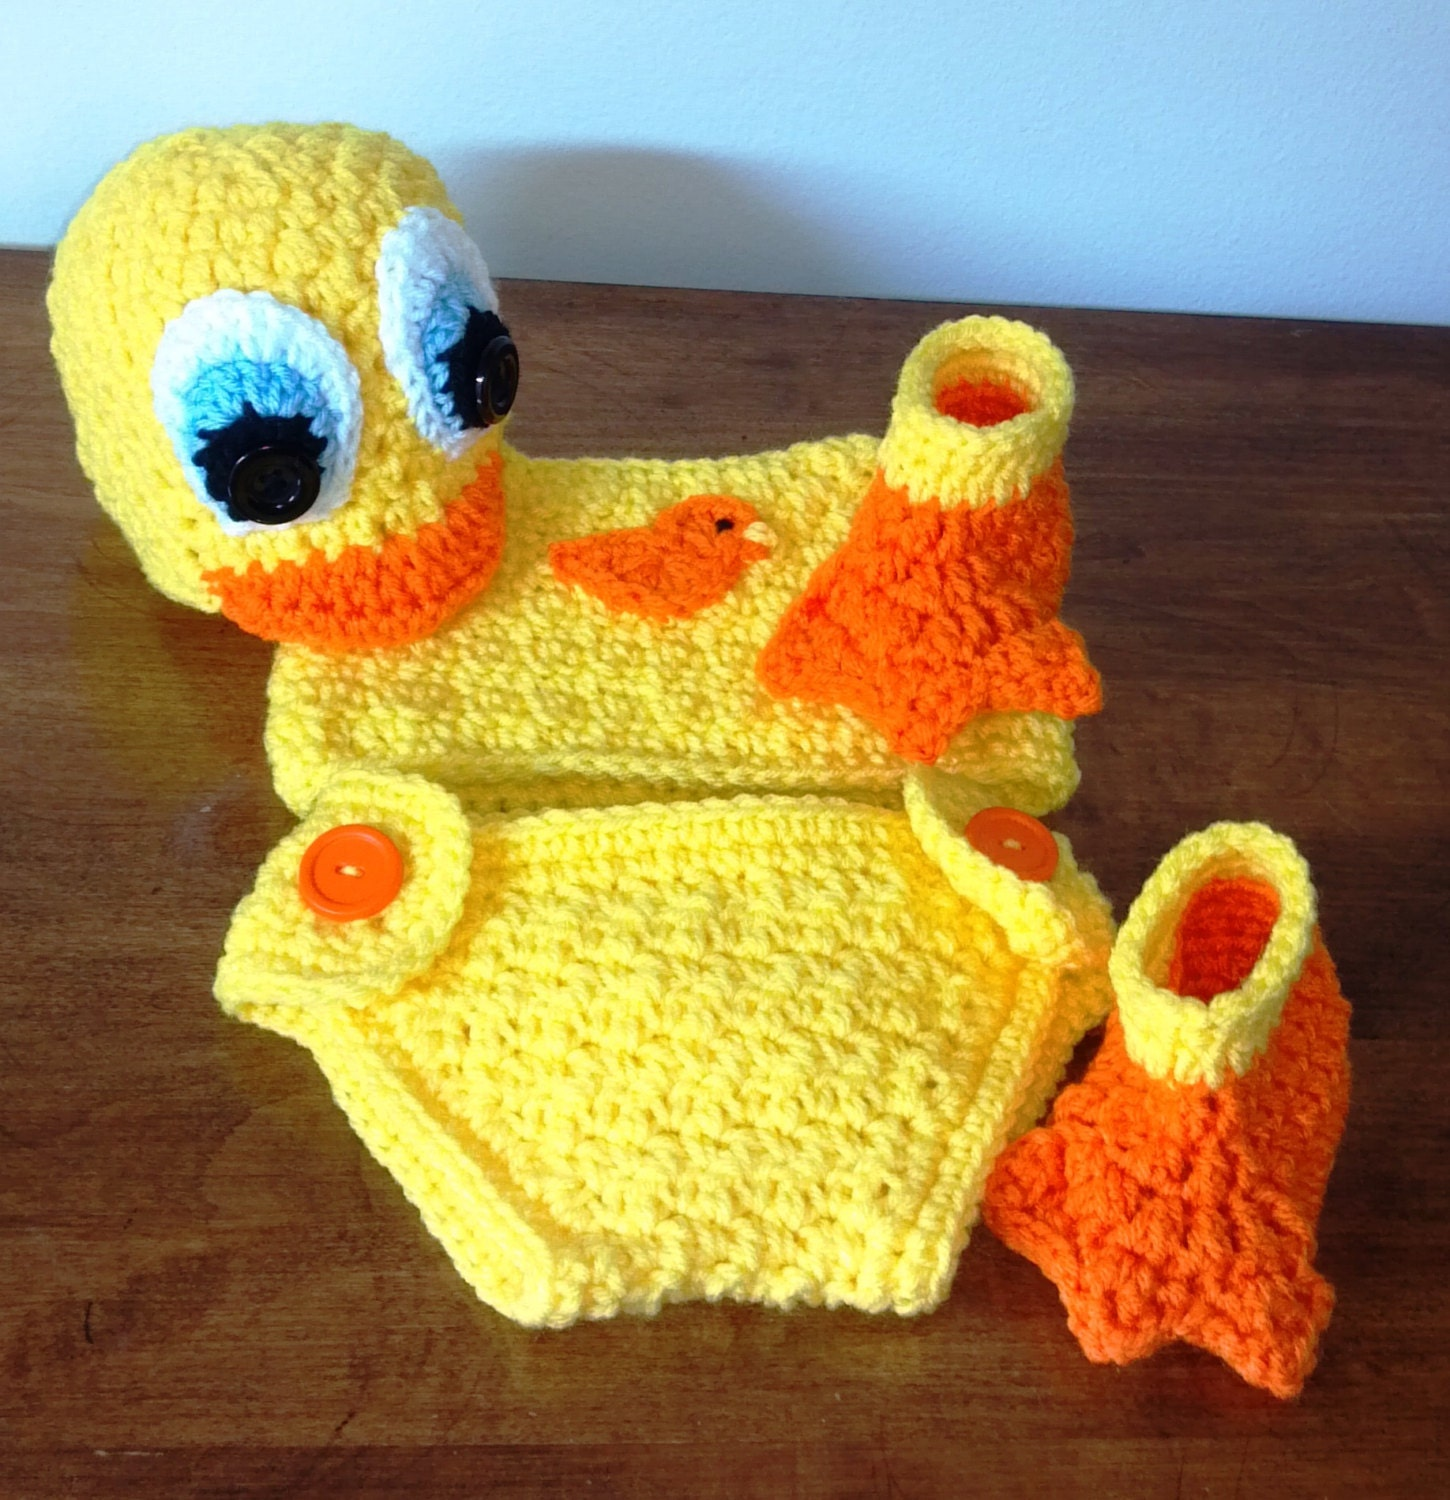 Colorful Crochet Patterns For Diaper Covers And Hats Image ...